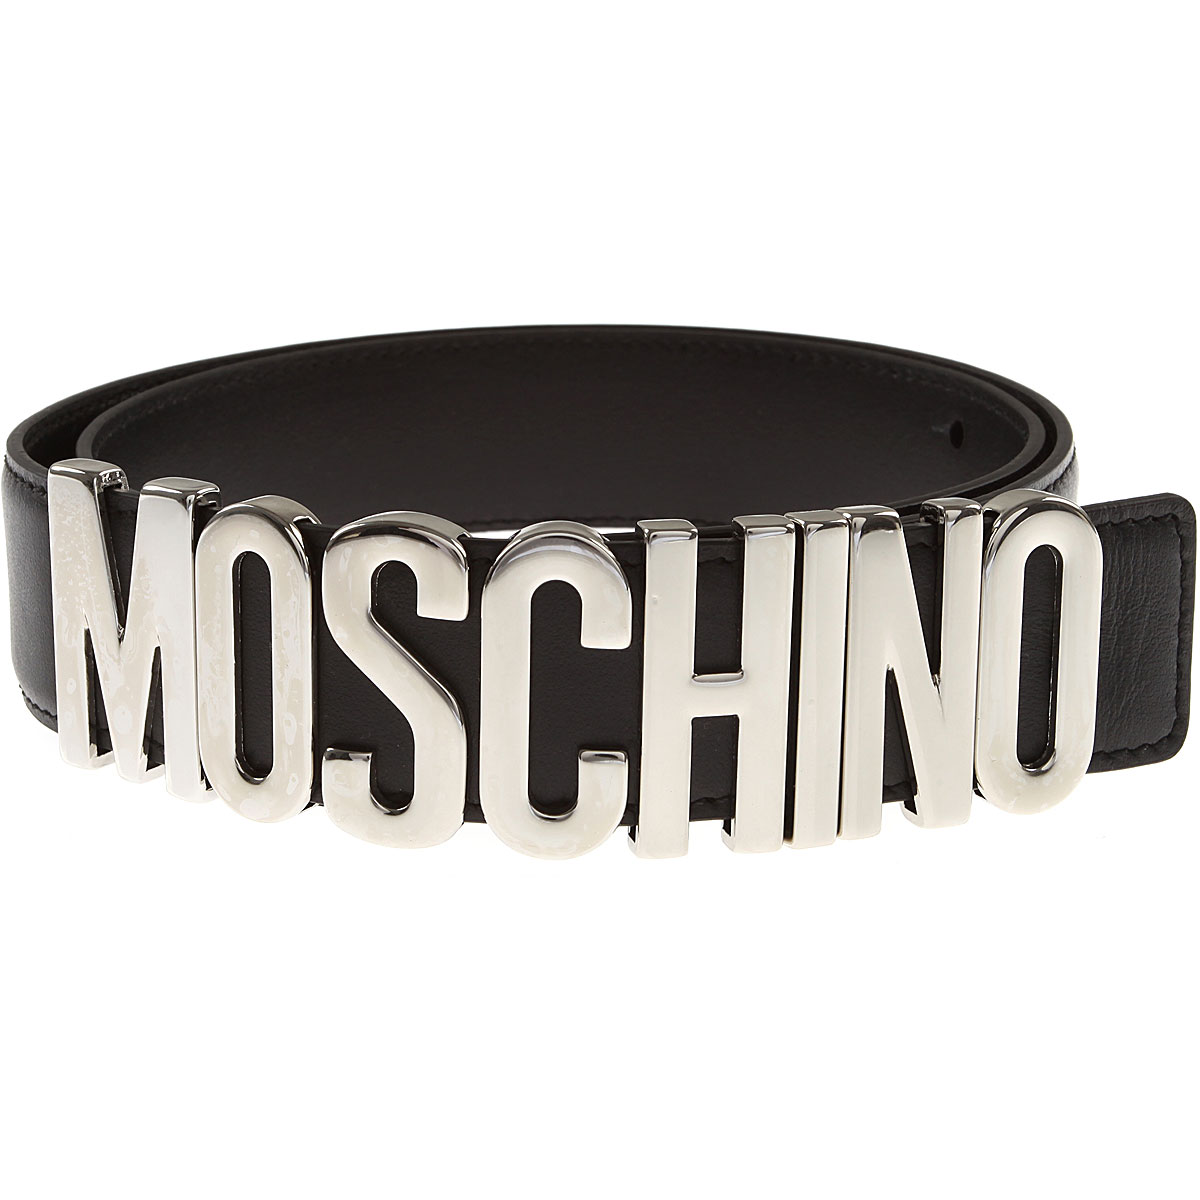 Moschino Womens Belts, Black, Leather, 2017, 44 inches - 110 cm Eu - 40